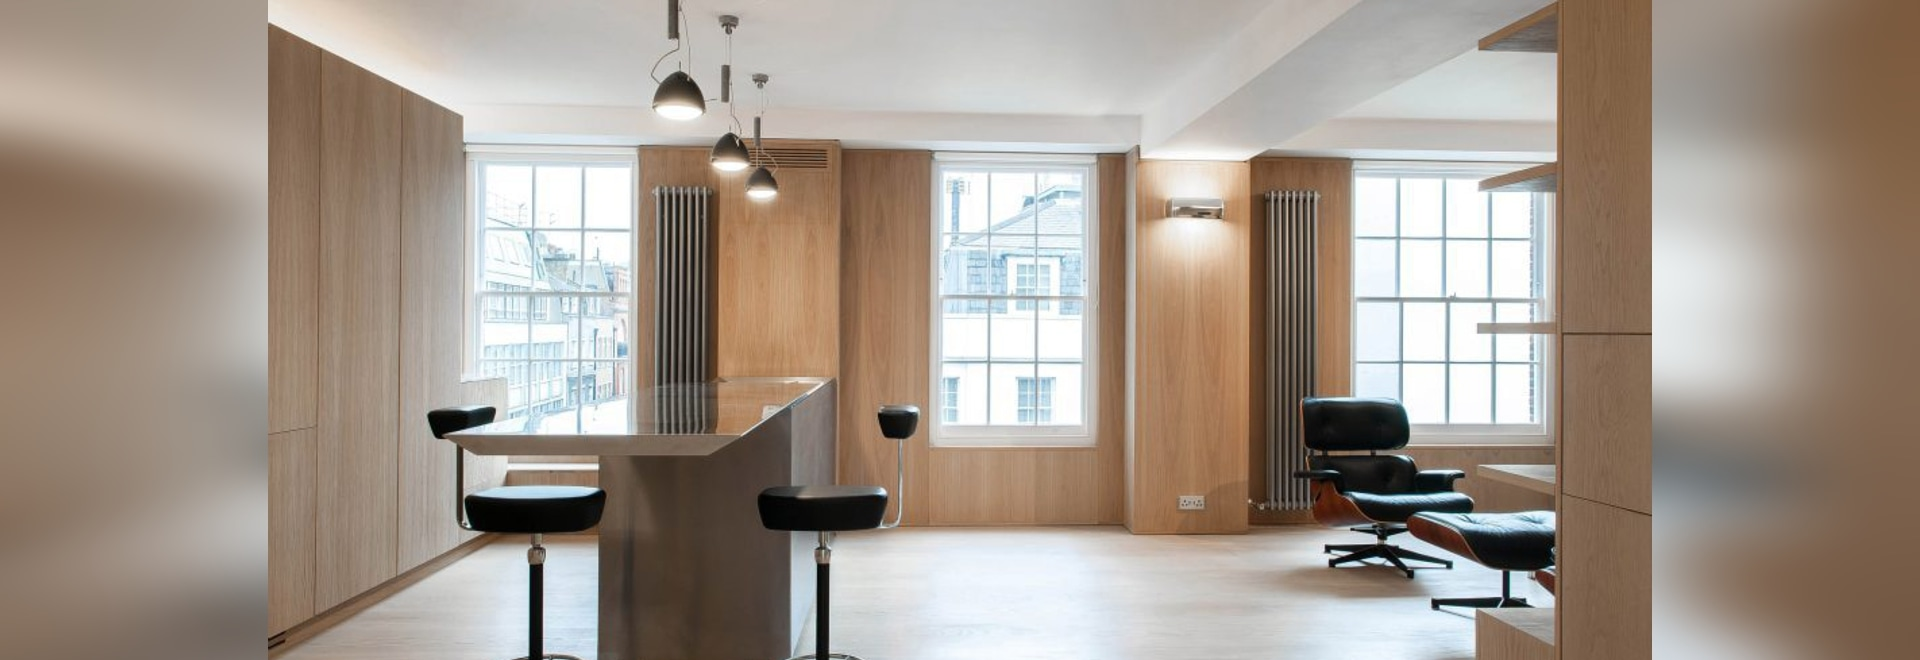 SIRS lines renovated London apartment in panels of marble and oak